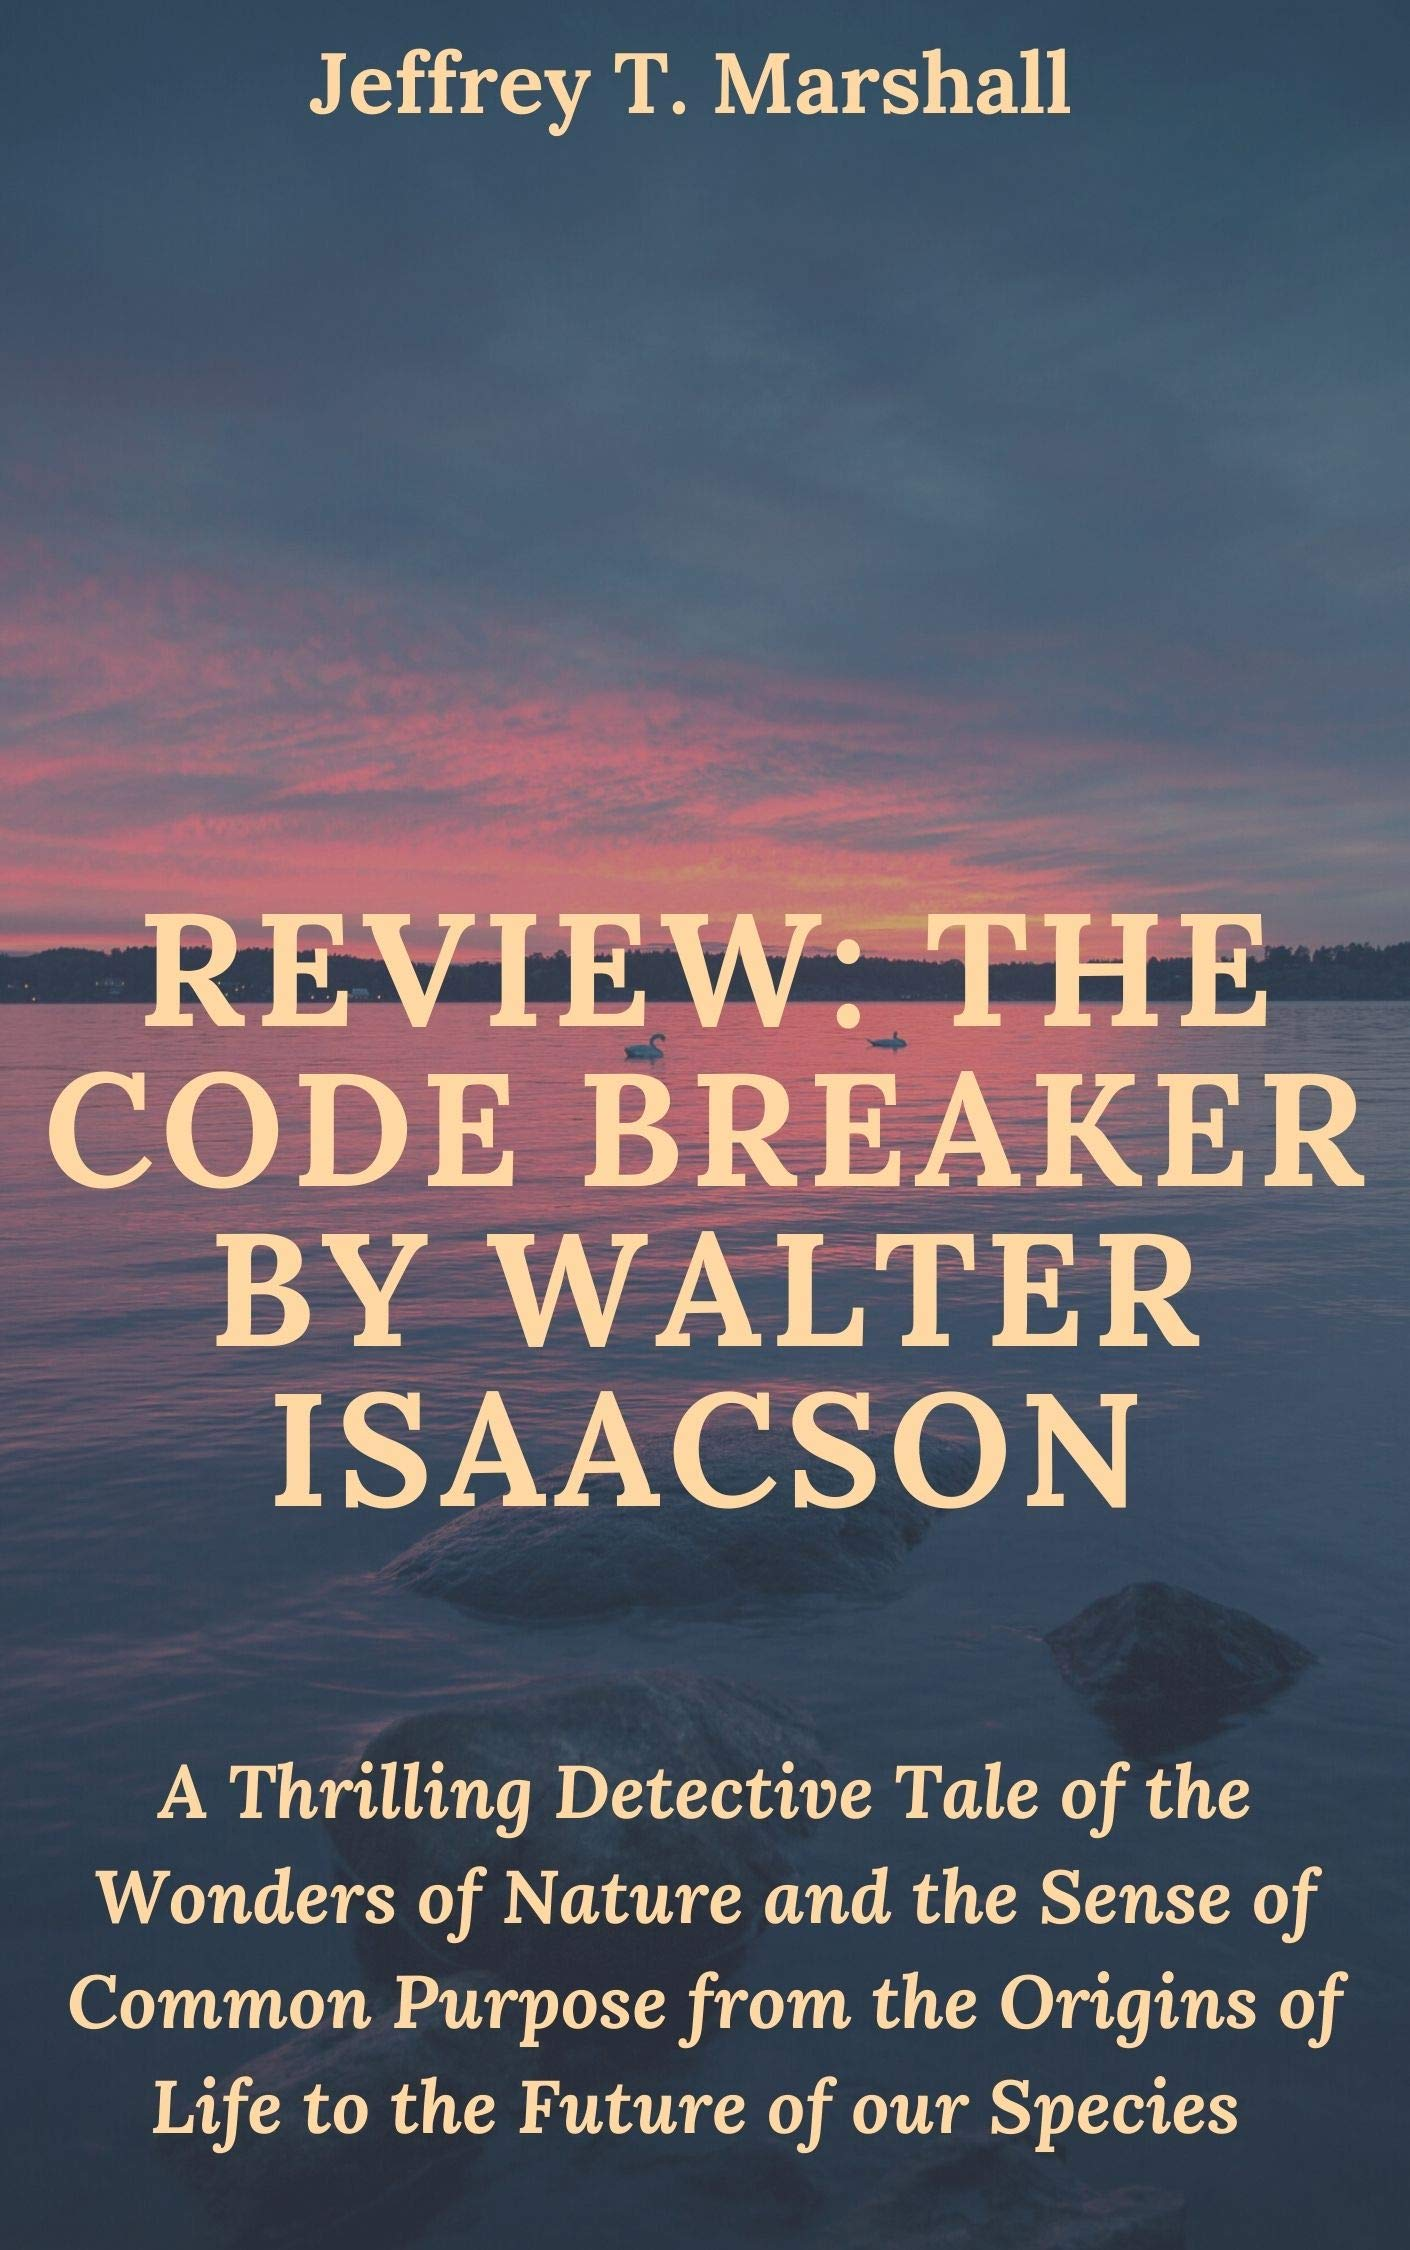 REVIEW: THE CODE BREAKER BY WALTER ISAACSON: A Thrilling Detective Tale of the Wonders of Nature and the Sense of Common Purpose from the Origins of Life to the Future of our Species